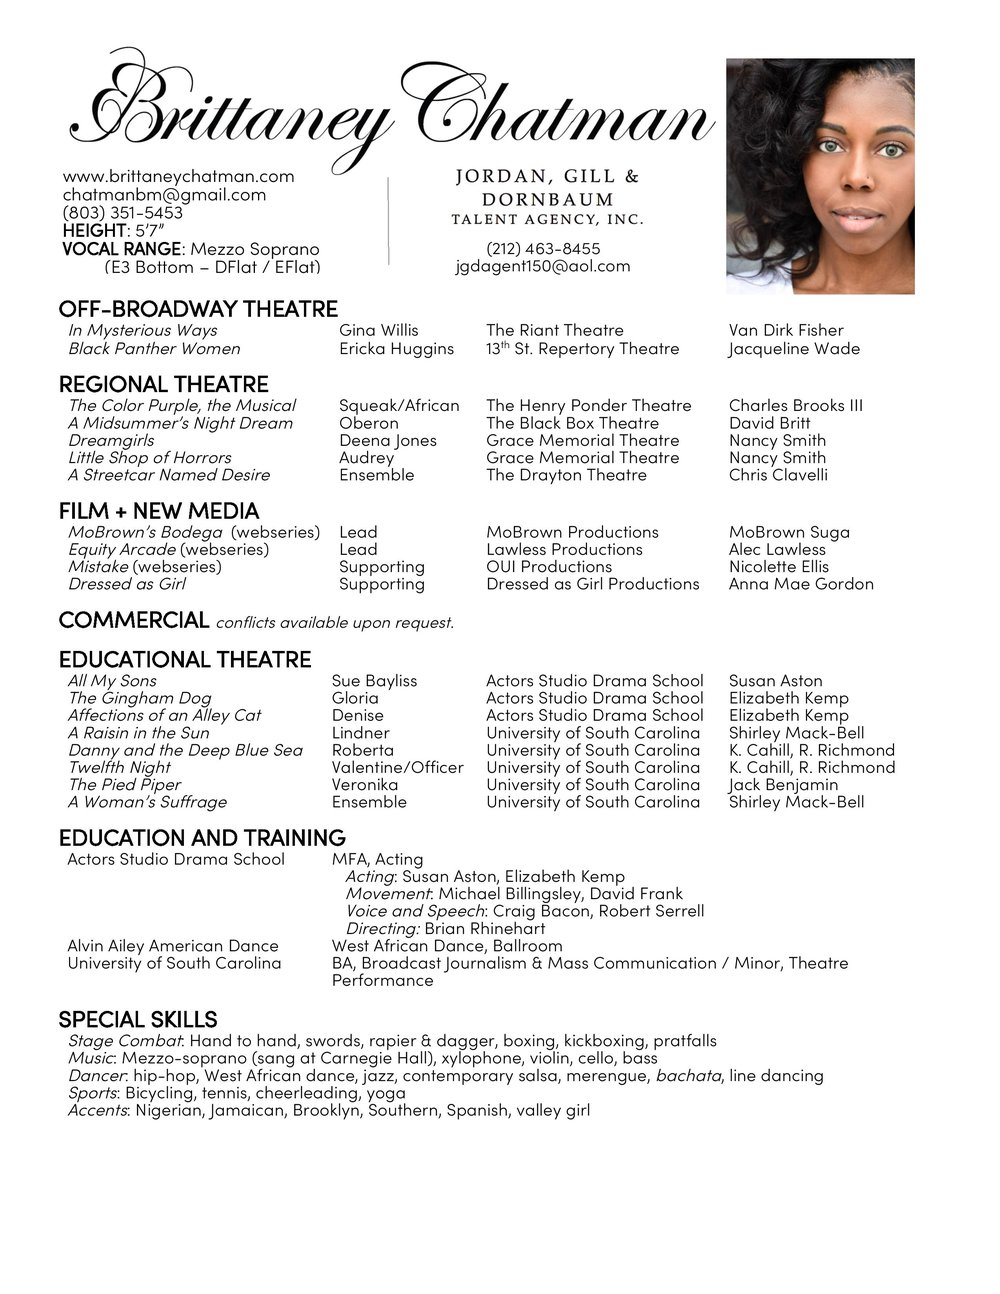 Resume+-+Brittaney+Chatman-page-001+(2).jpg